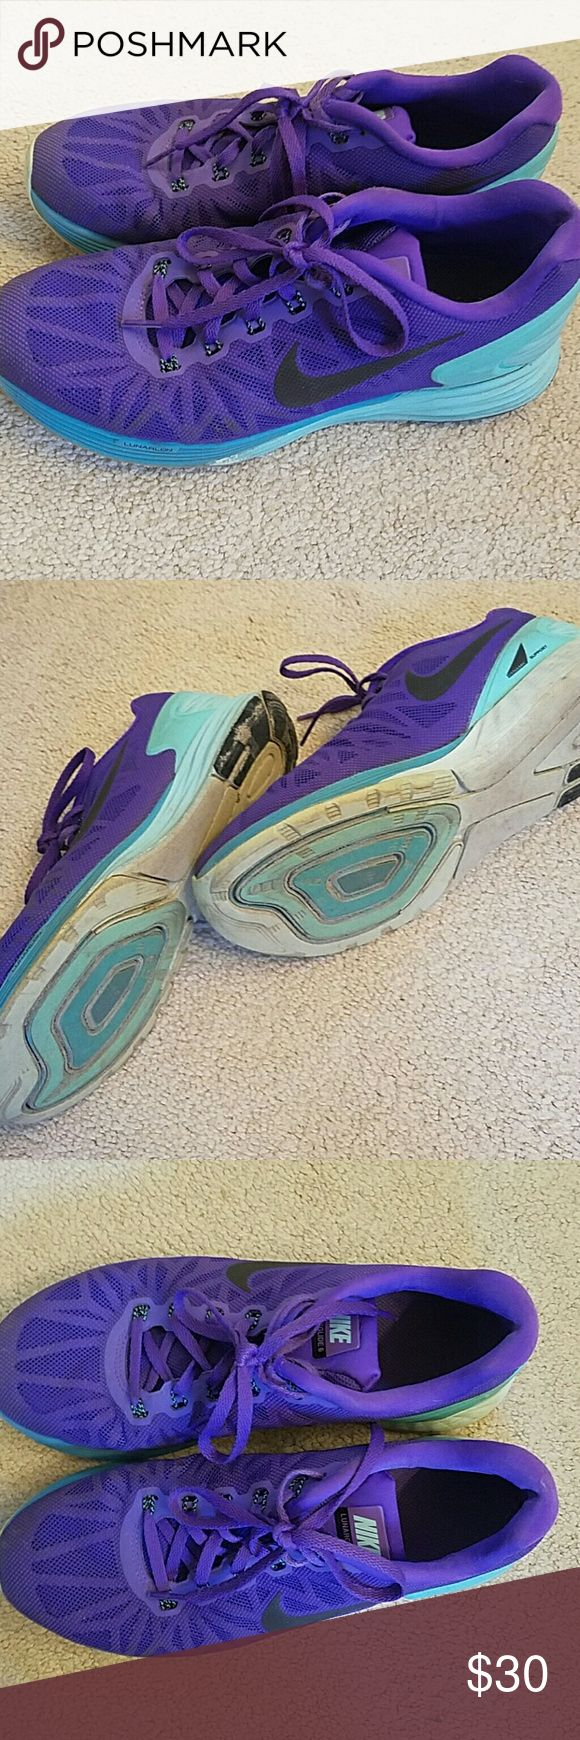 Nike Lunar glide Workout Shoes Used condition but still cute Nike Shoes Athletic Shoes